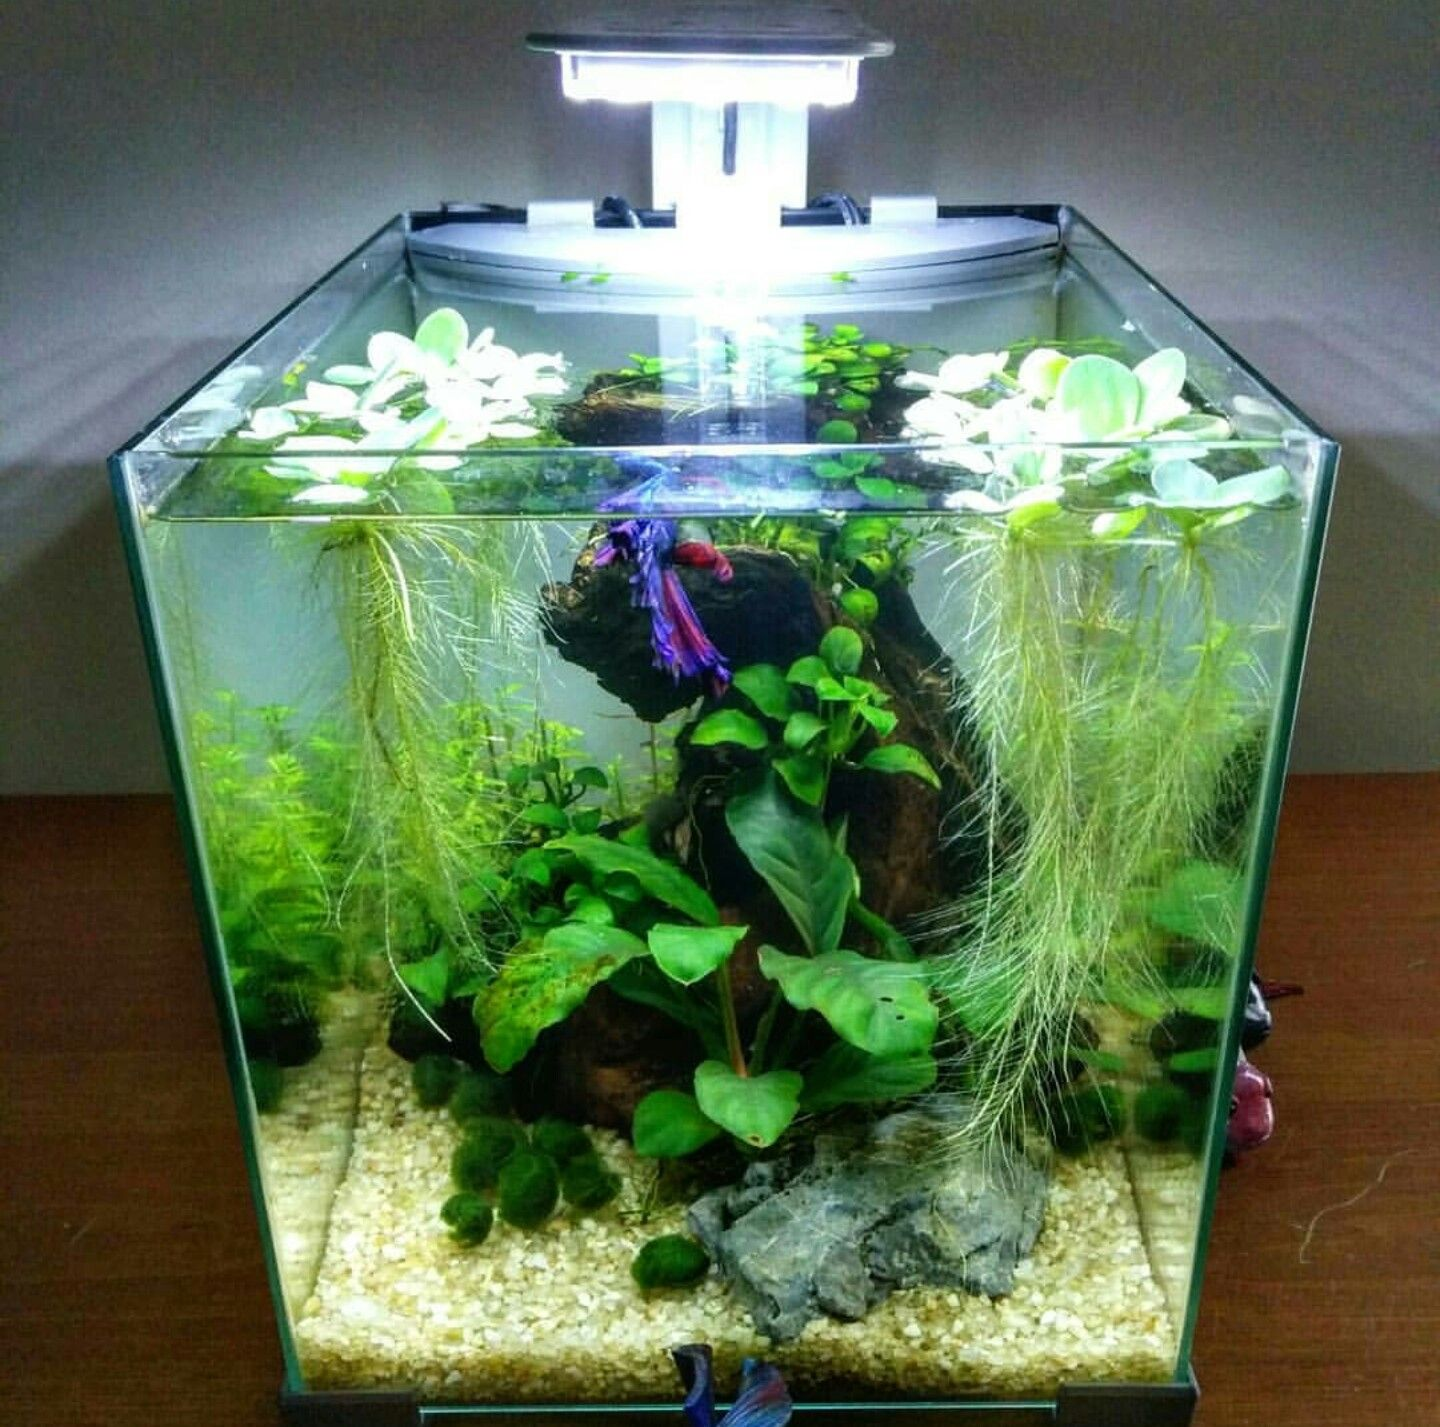 Cecil S Tank By Nano Aquatic On Instagram Betta Fish Tank Betta Fish Beta Fish Tank